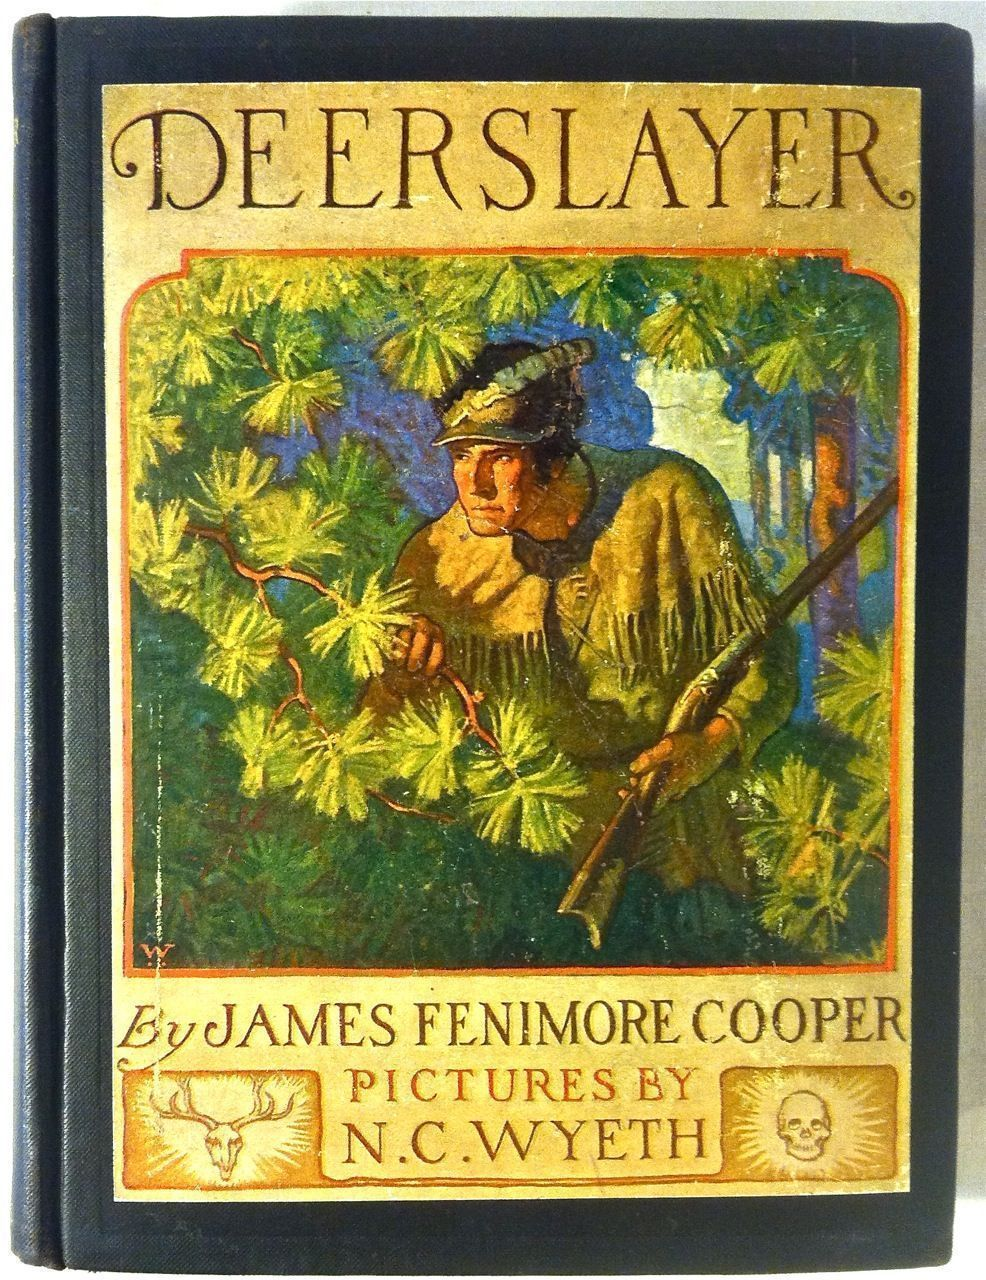 an examination of the book the deerslayer by james fenimore cooper Principles and aims this book rests on two principles:  james fenimore cooper was  examination of instead of by examining.